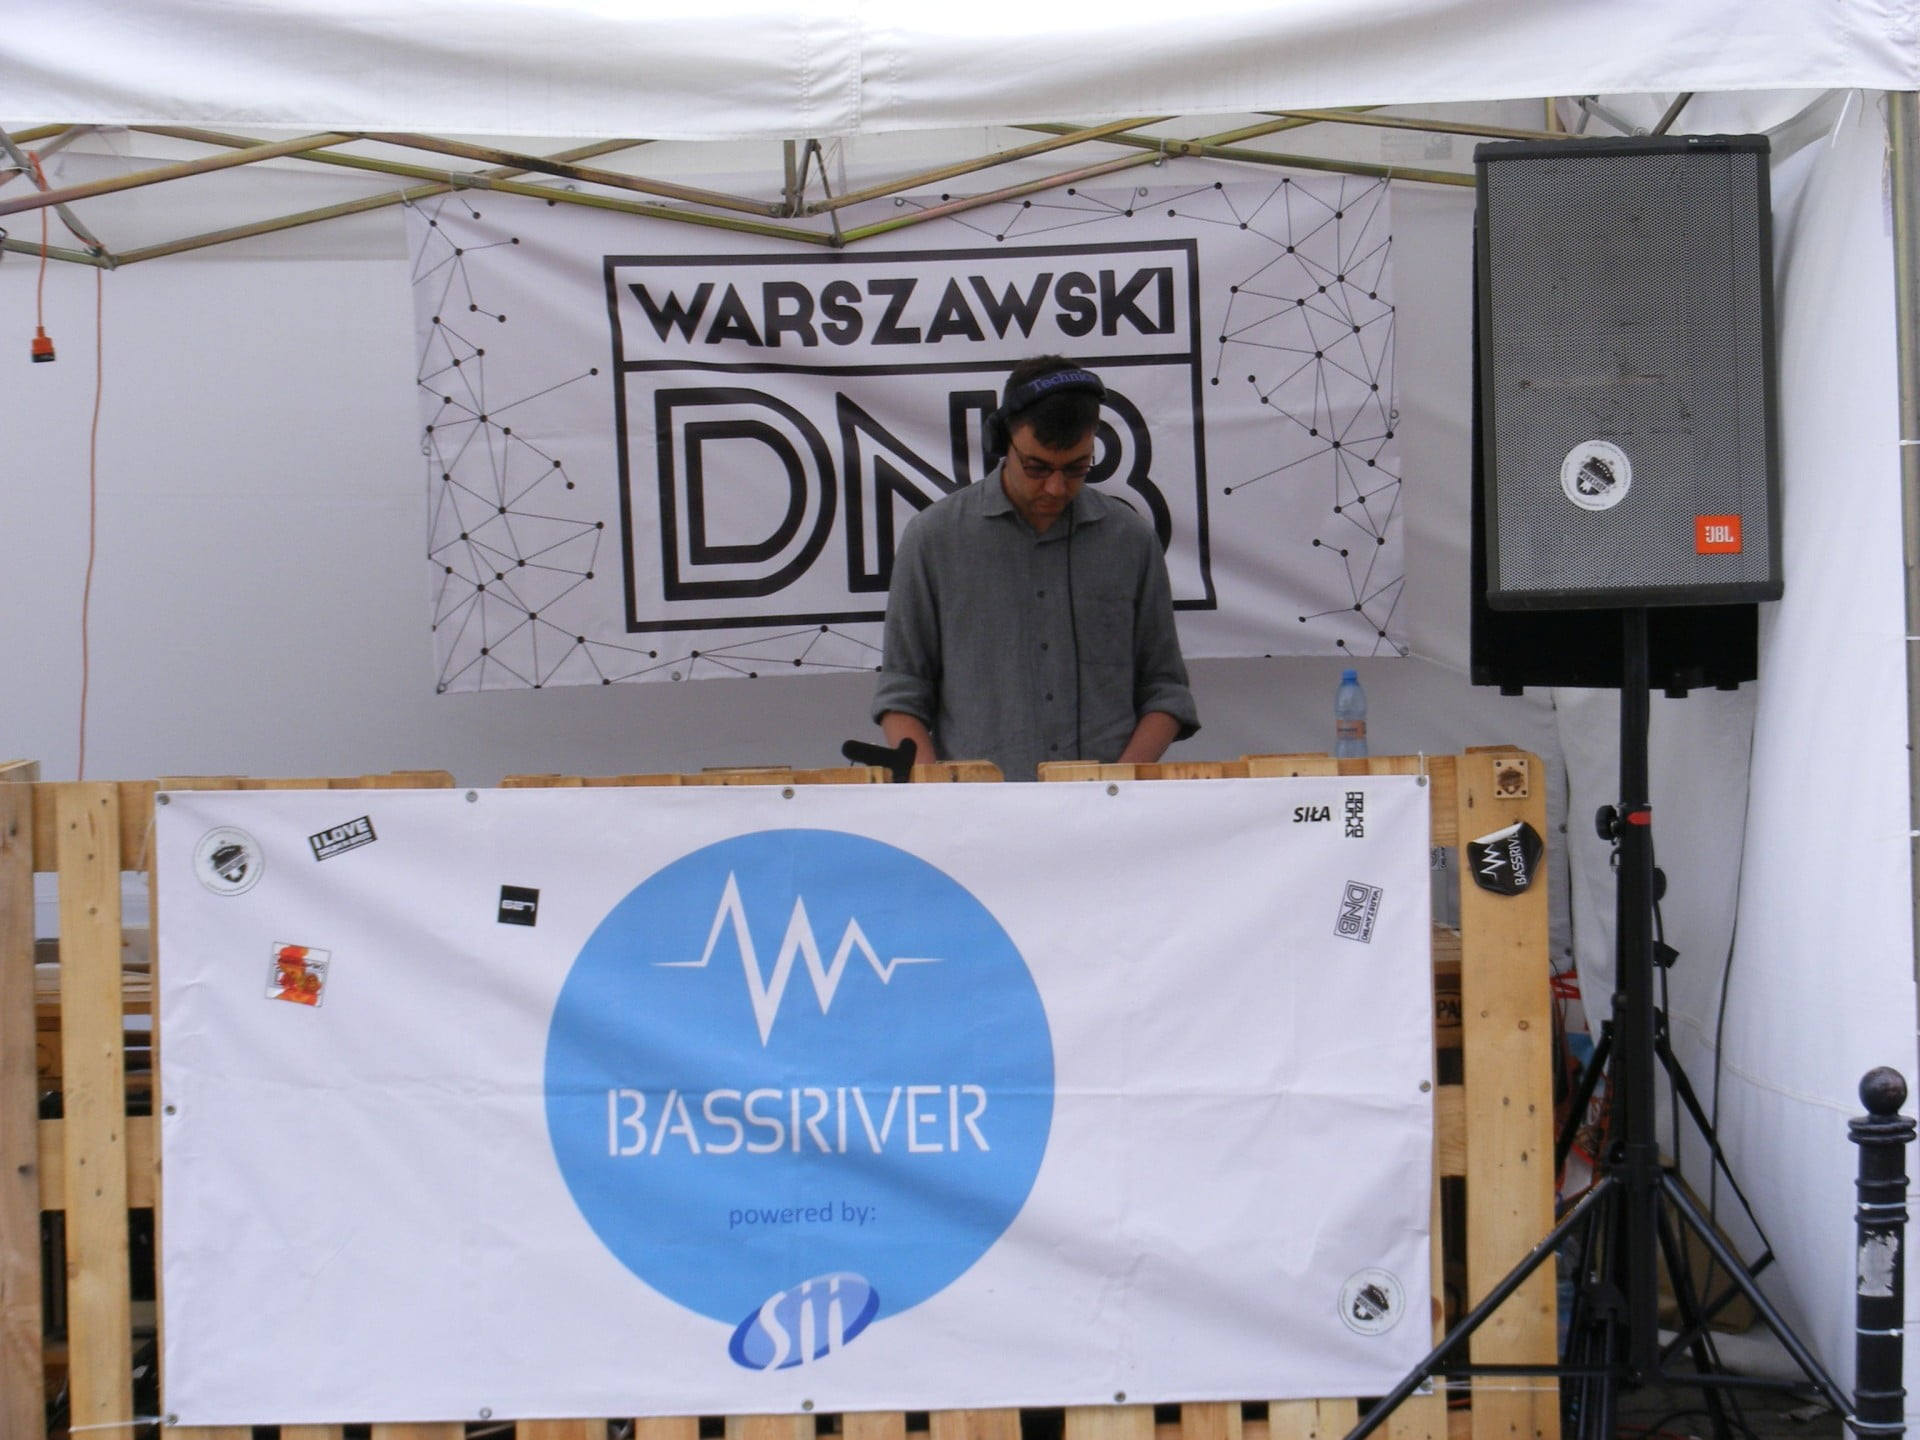 BassRiver powered by Sii 15